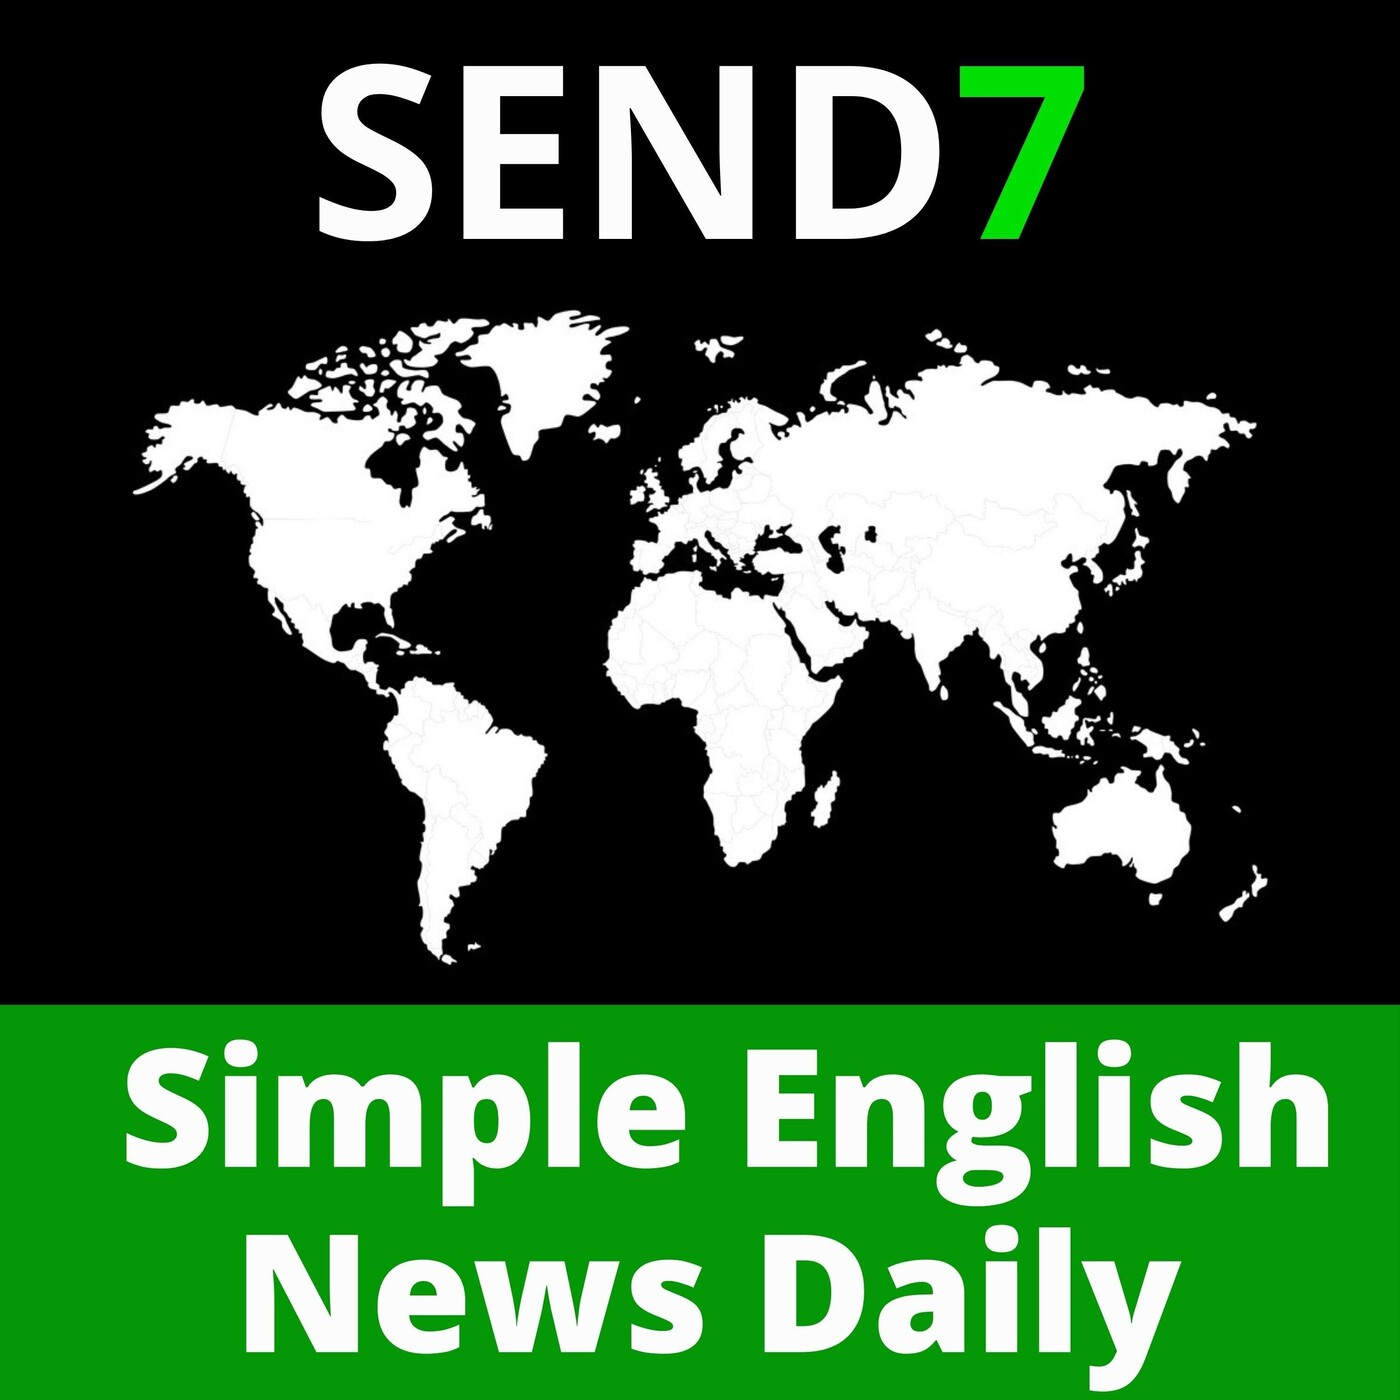 Thursday 6th August 2020. World News in Easy English. Today: Lebanon explosion updates. New Hindu Temple Conflict. Sr...